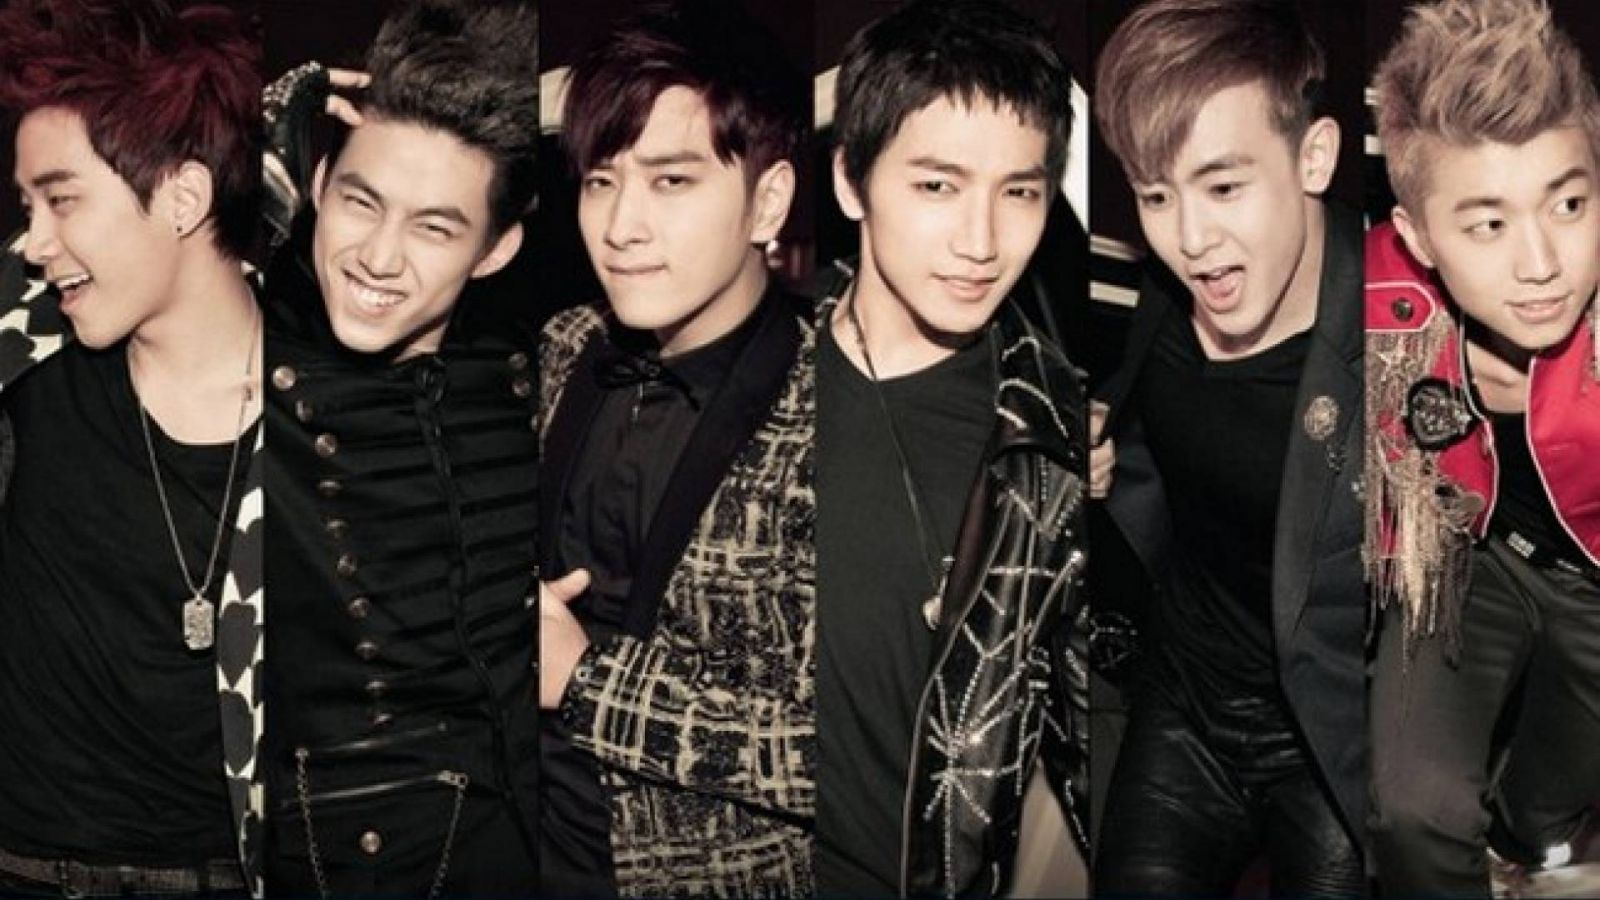 Nouveau single japonais des 2PM © JYP Entertainment